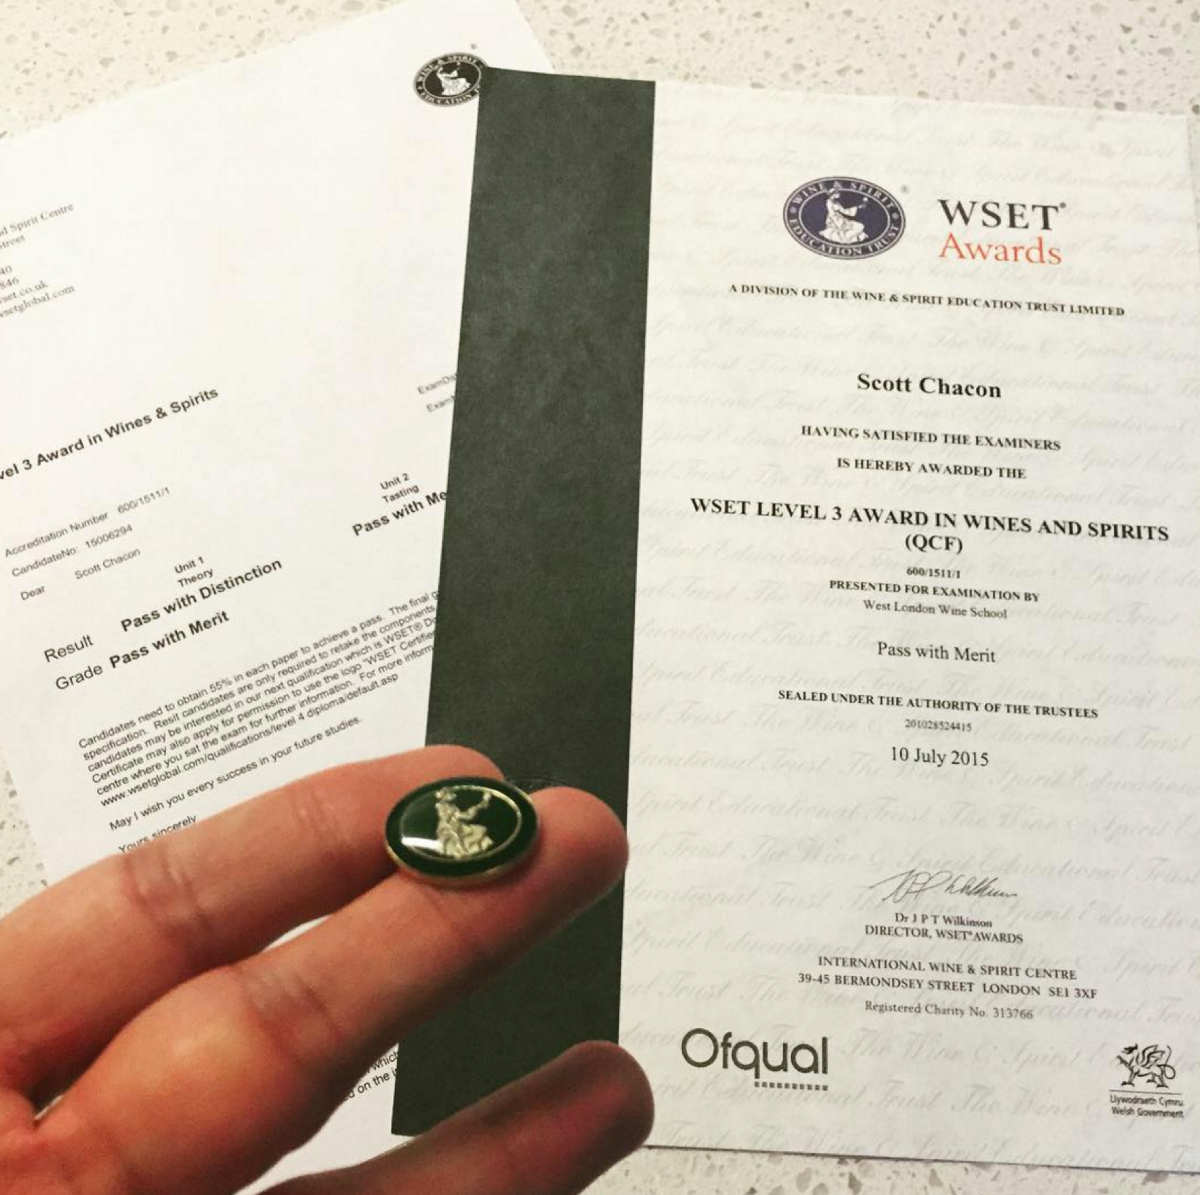 My WSET Level 3 certification and pin